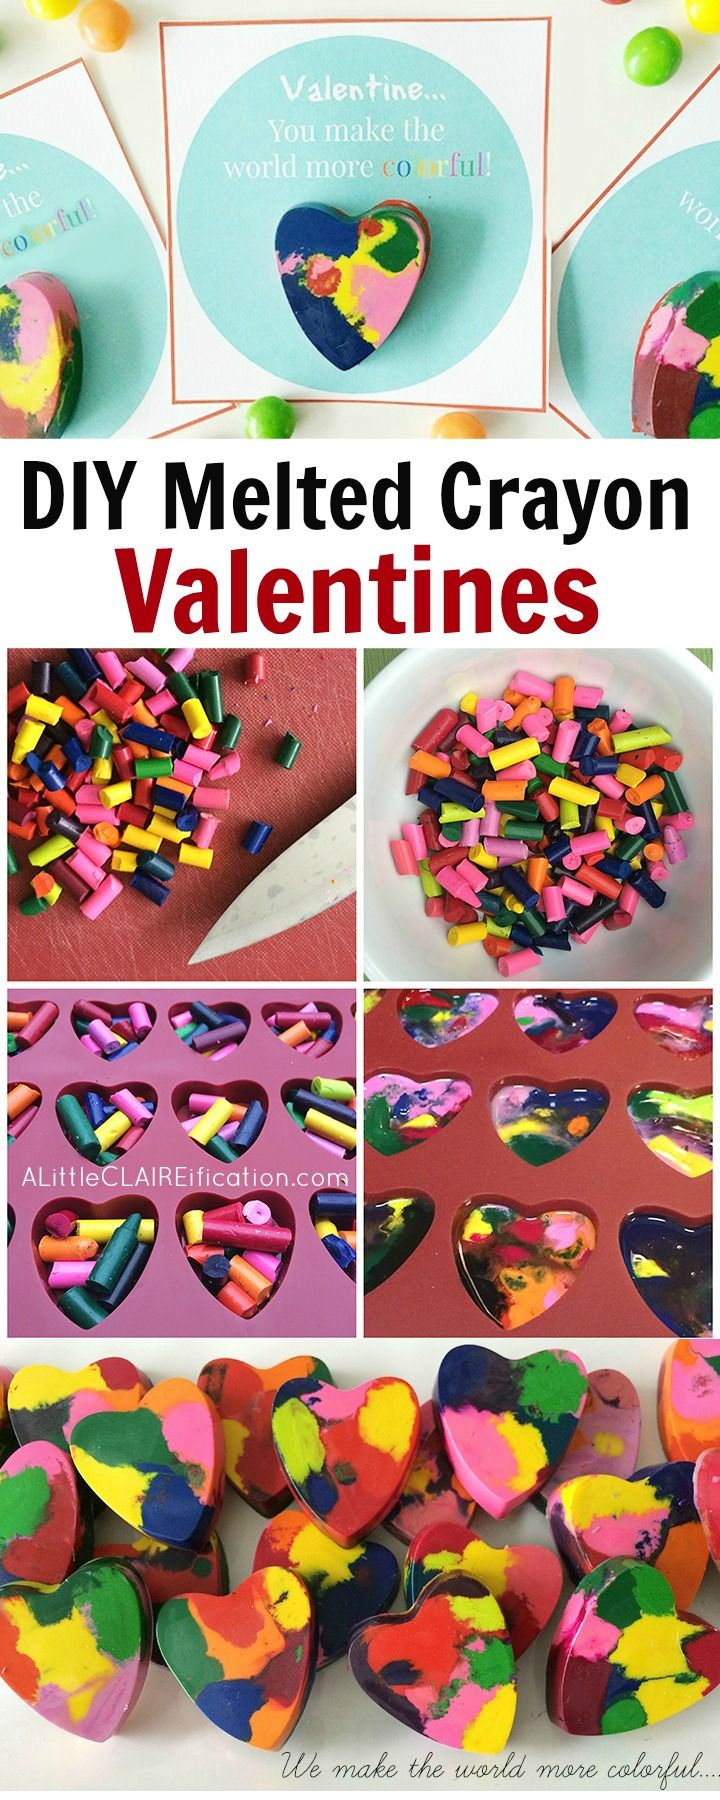 DIY Melted Crayon Kids Valentines - so easy to make and hands on for the kids